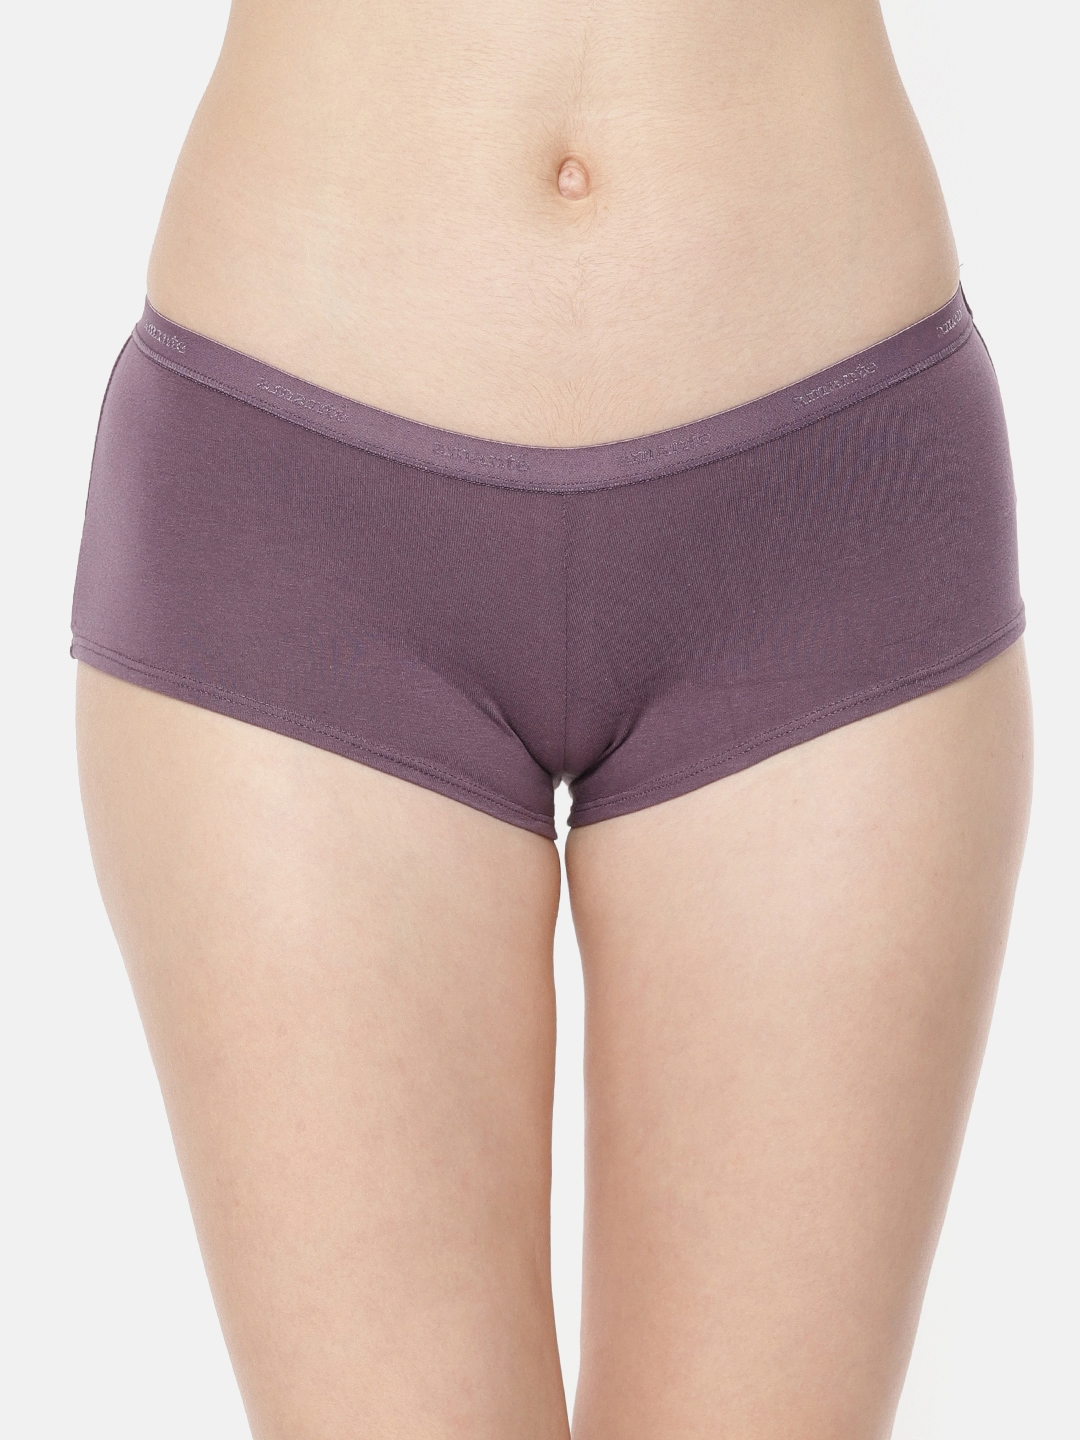 fdb9ef5a1c7d Buy Amante Women Pack Of 2 Solid Boyshorts PPK62001 - Briefs for ...